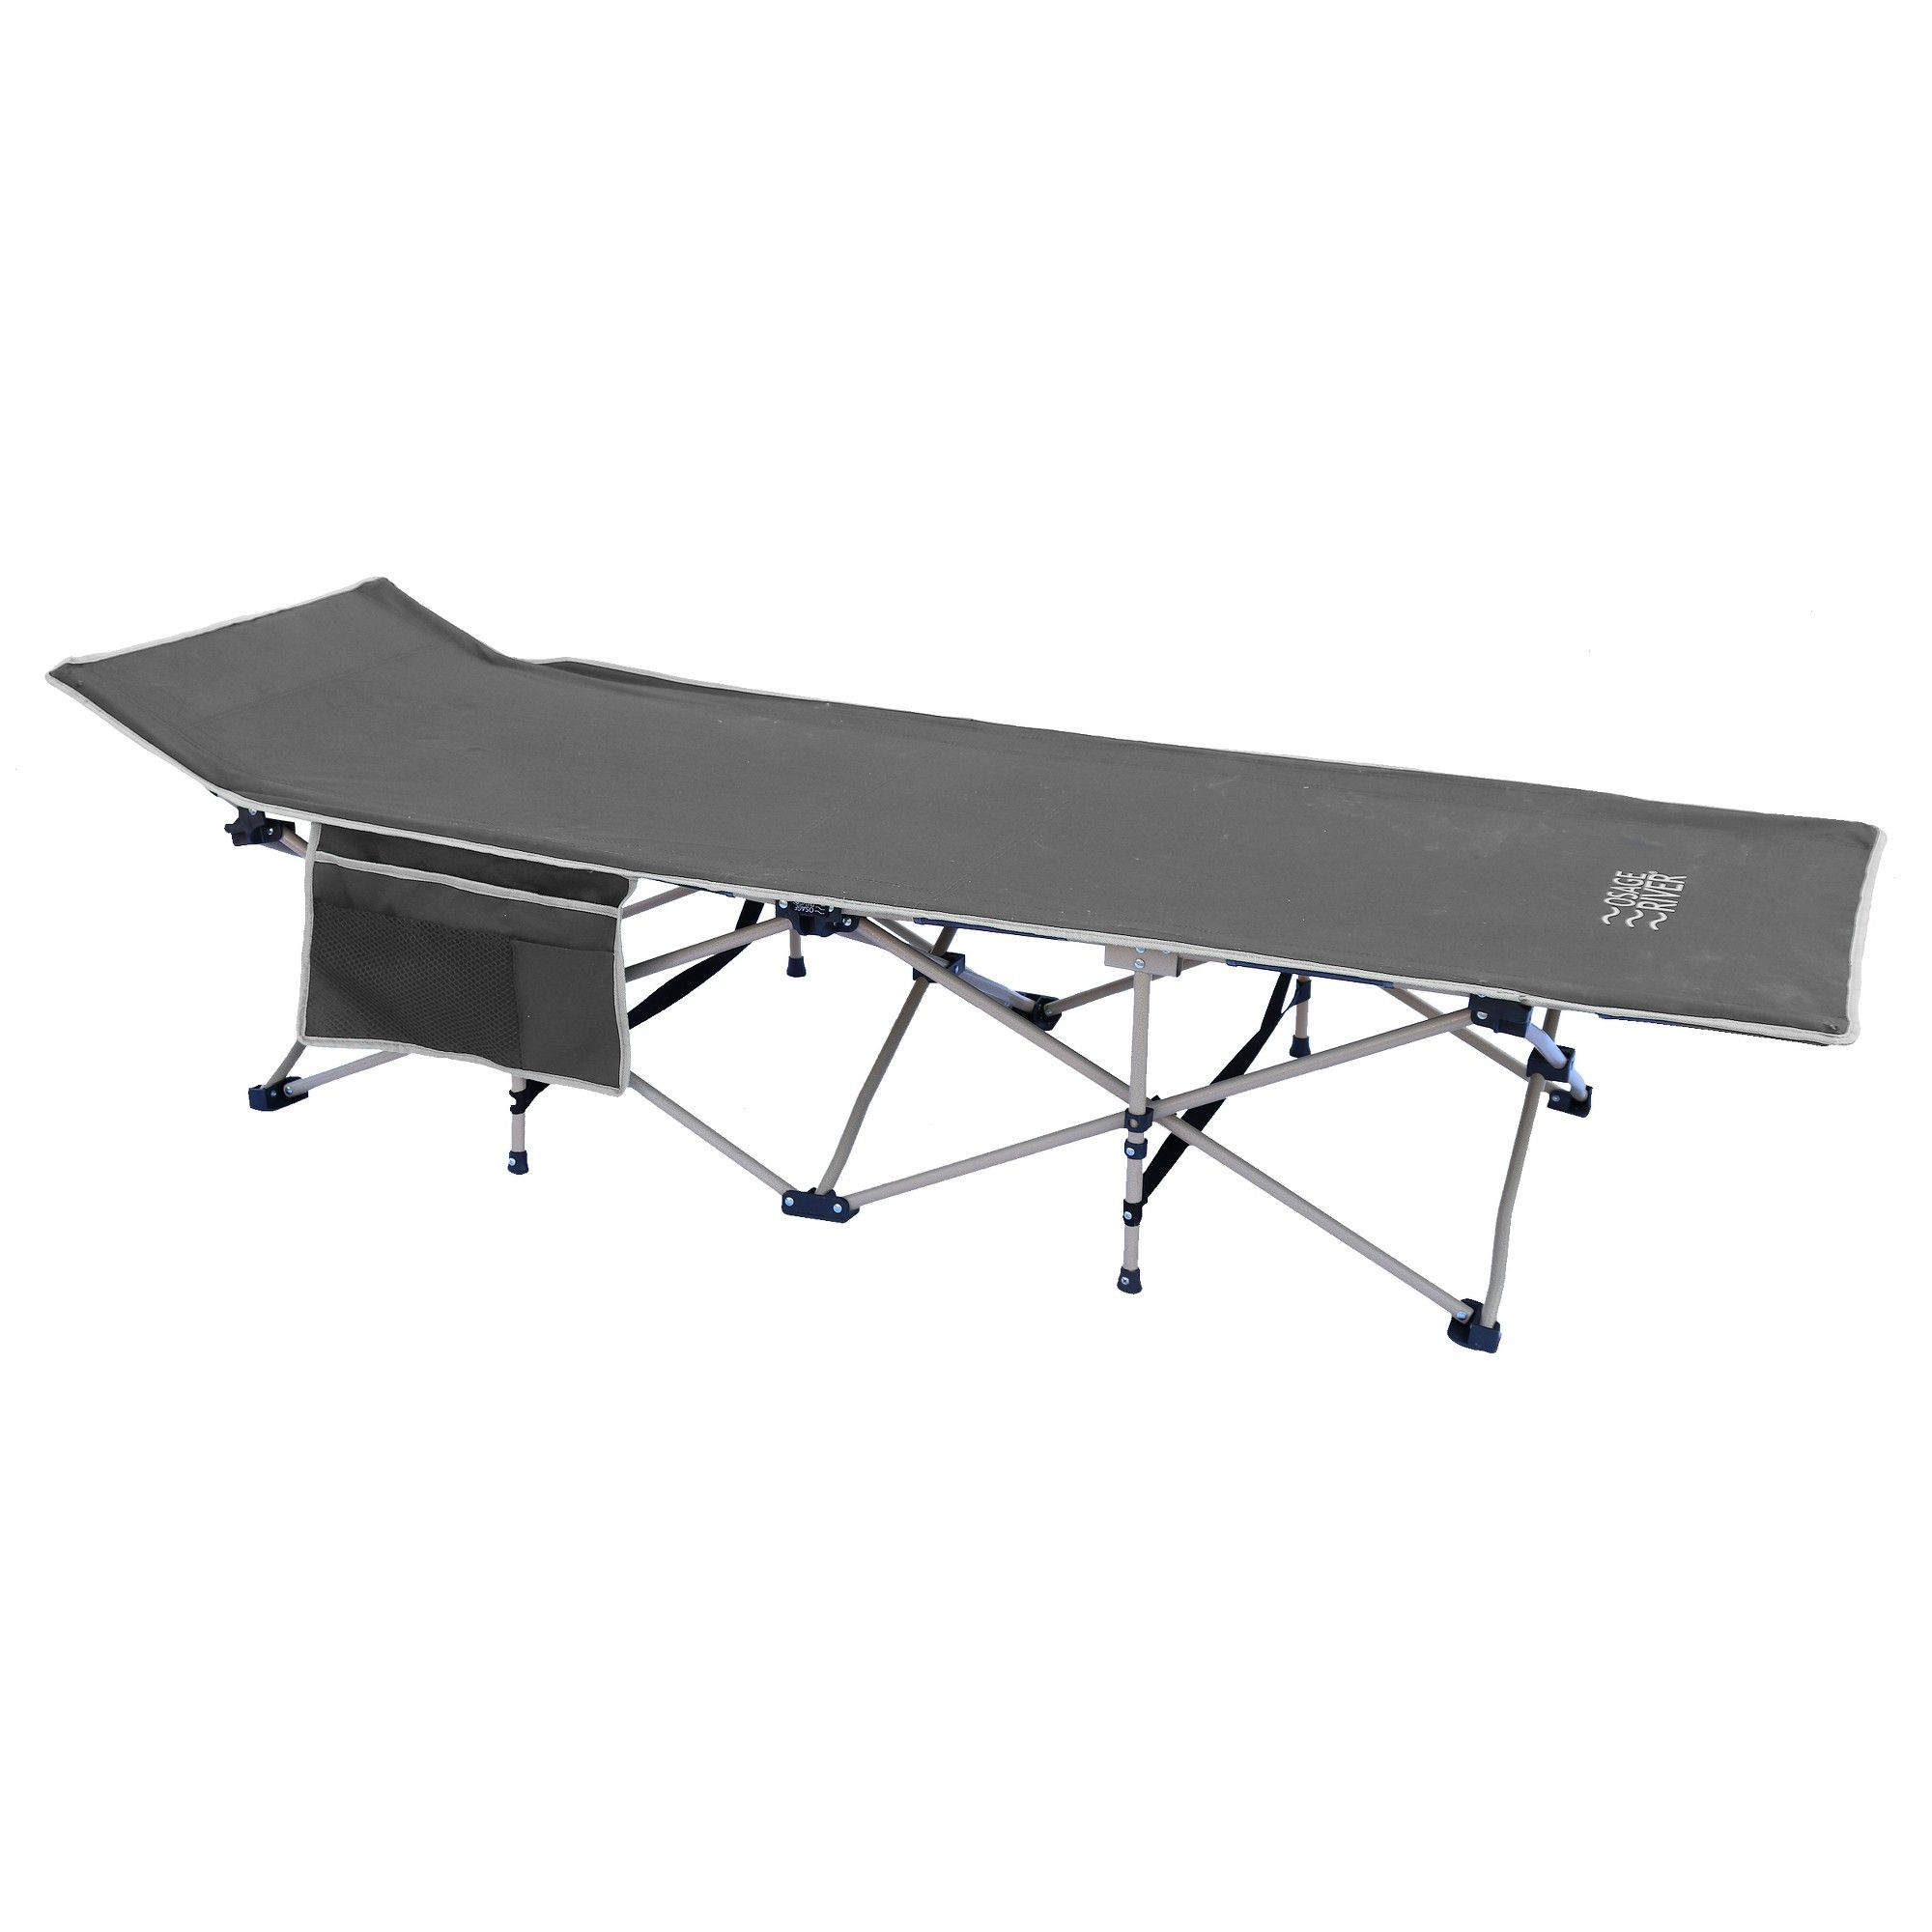 Camping Cot Coleman Outdoor Portable Folding Sleeping Gear Bed Camp Hiking Sleep